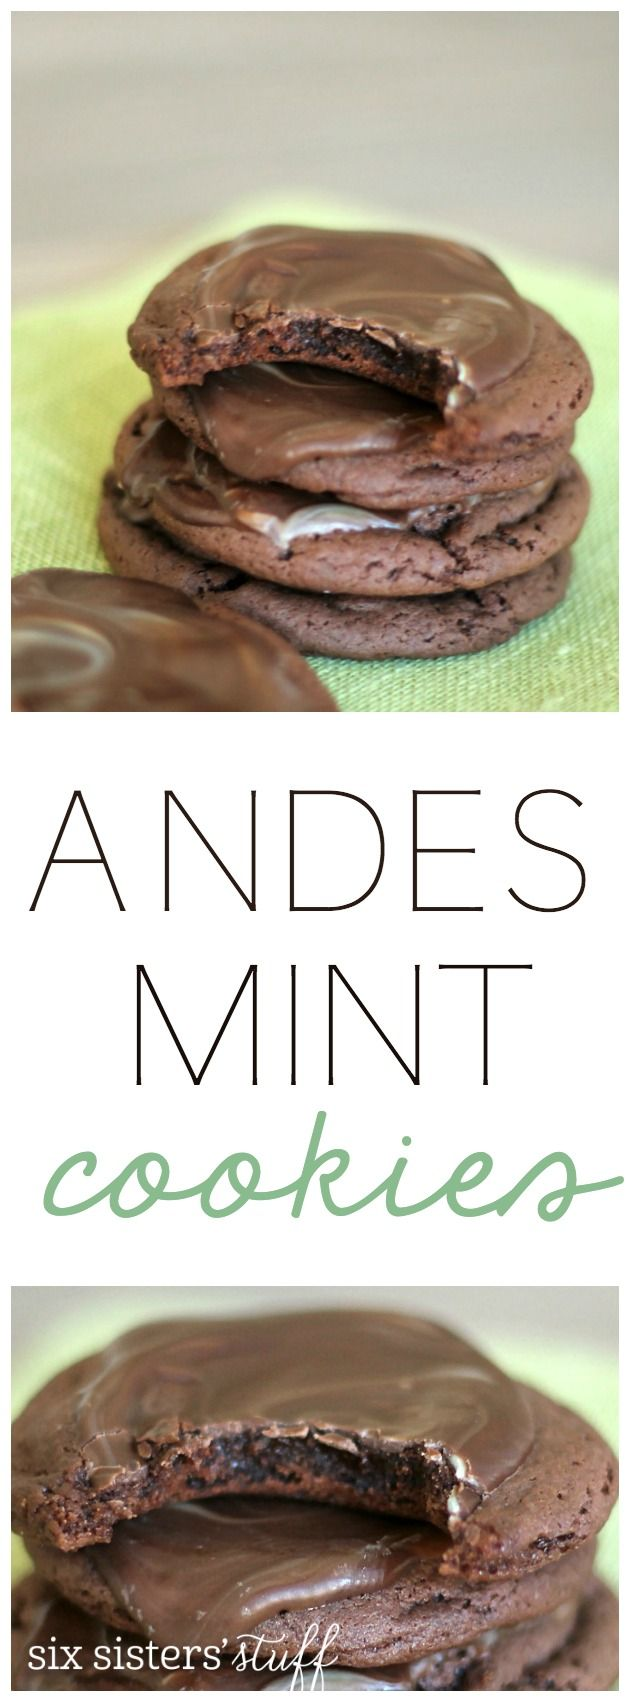 Andes Mint Cookies from SixSistersStuff.com. So easy to make and taste AMAZING!